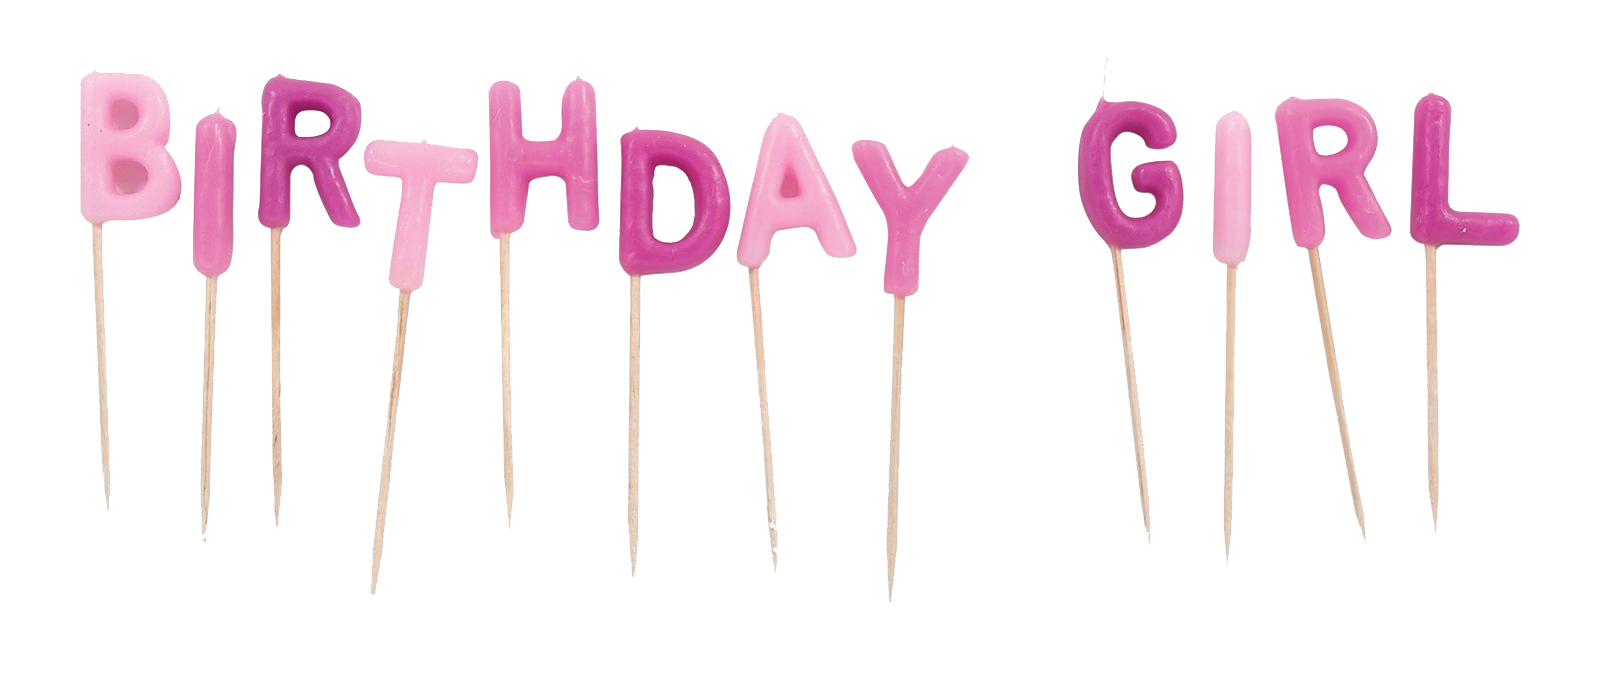 Birthday Candles Png Clipart Png Image - Birthday Candles, Transparent background PNG HD thumbnail